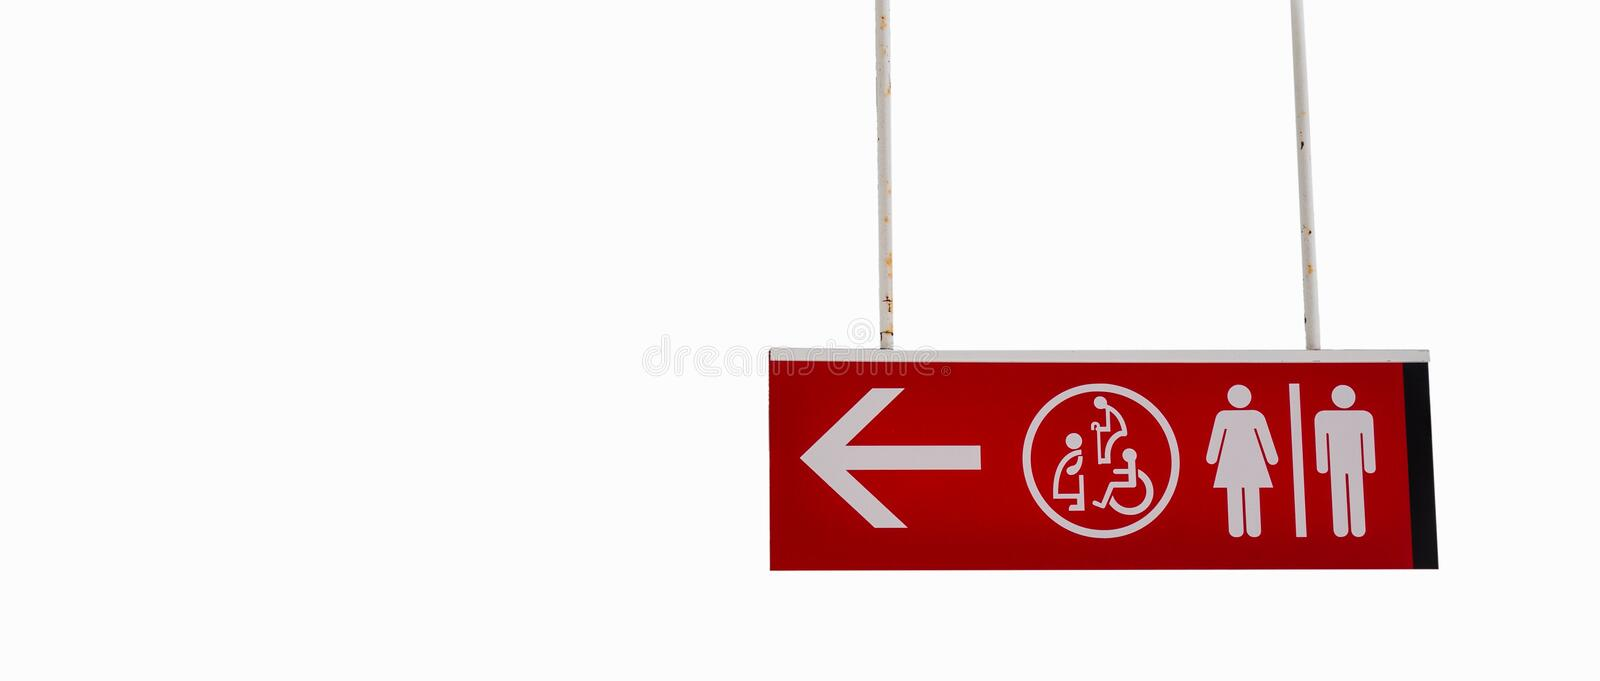 Toilet sign dicut on white background,Clipping - path. Toilet sign dicut on white background,Clipping - path stock photo